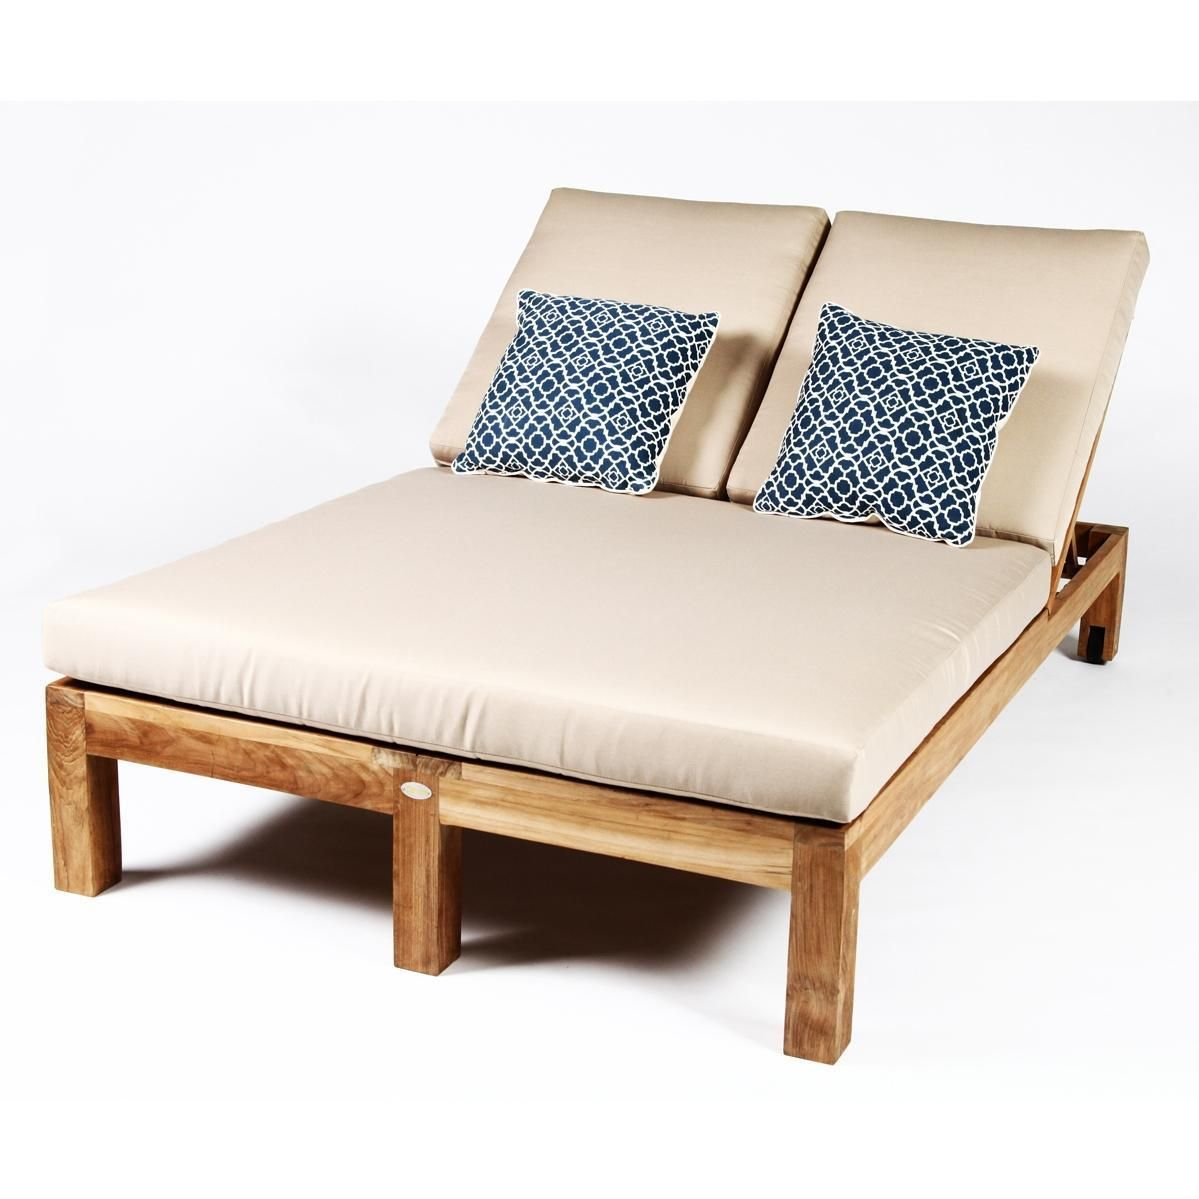 Double Chaise Lounge Chair Lanai